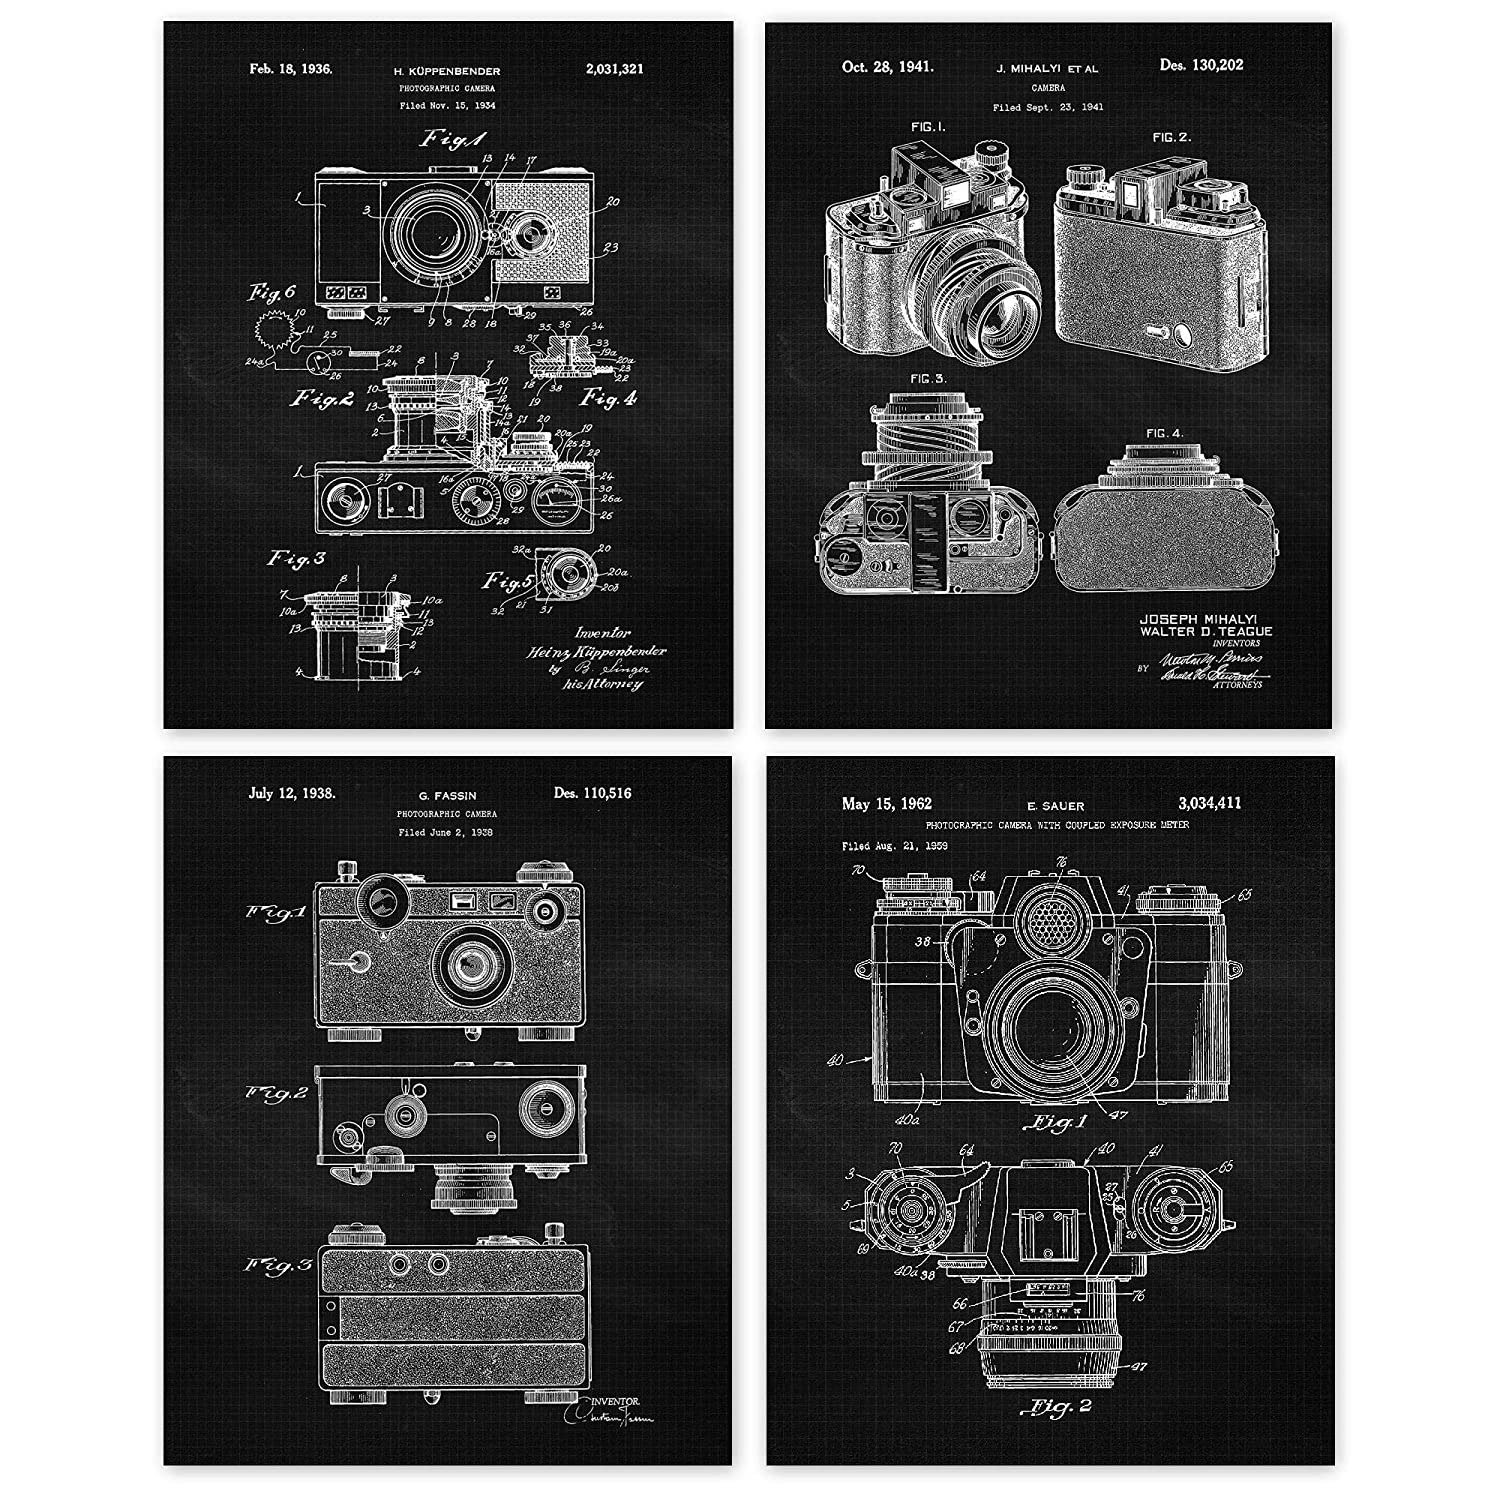 Vintage Classic Camera Patent Poster Prints, Set of 4 (8x10) Unframed Photos, Wall Art Decor Gifts Under 20 for Home, Office, Garage, Man Cave, School, College Student, Teacher, Photography Fan